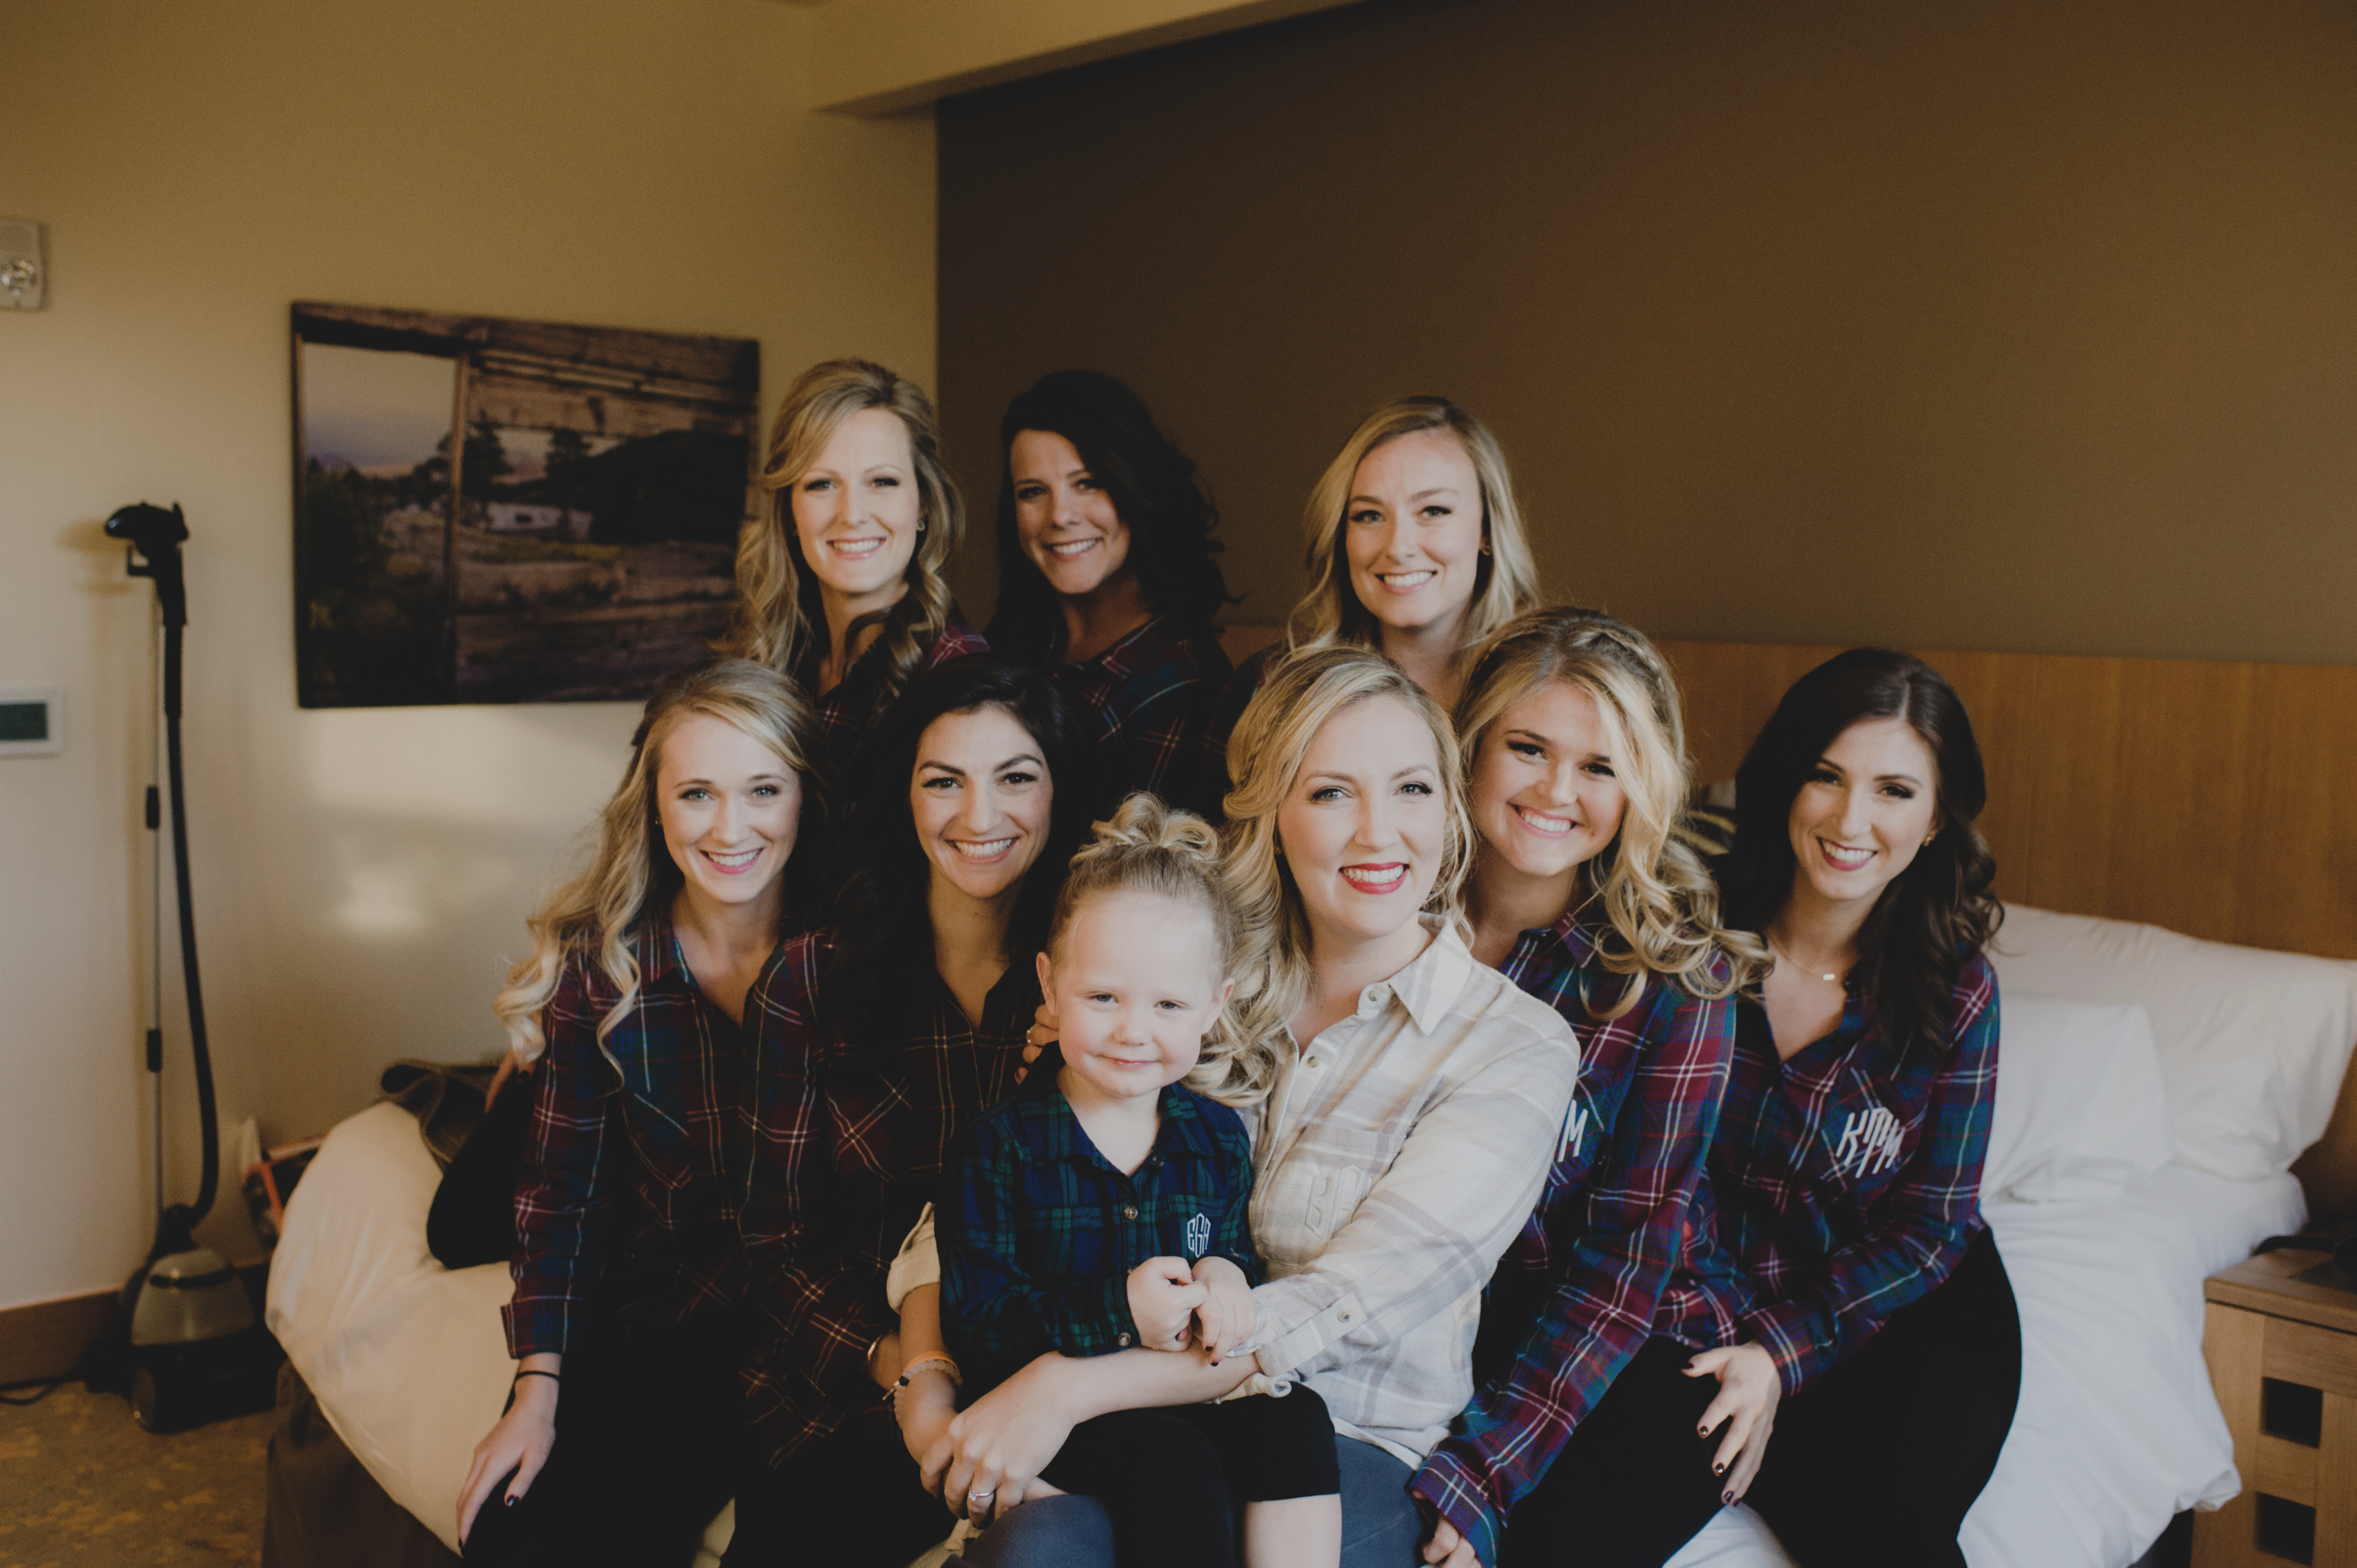 Cedarbrook Lodge wedding in Seattle | Matching embroidered Christmas plaid button-ups for bridal party getting ready photos | Perfectly Posh Events | Carly Bish Photography